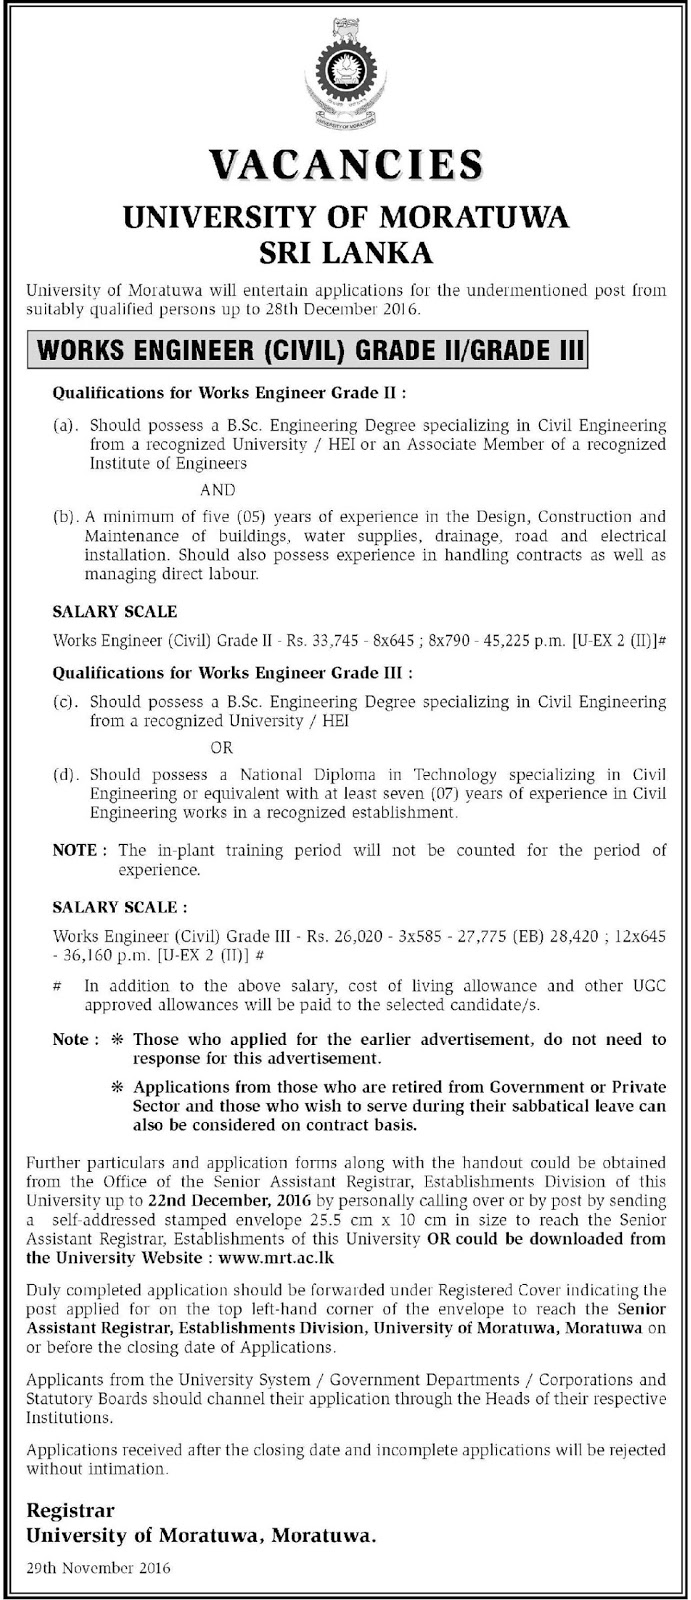 Sri Lankan Government Job Vacancies at University of Moratuwa for civil engineers